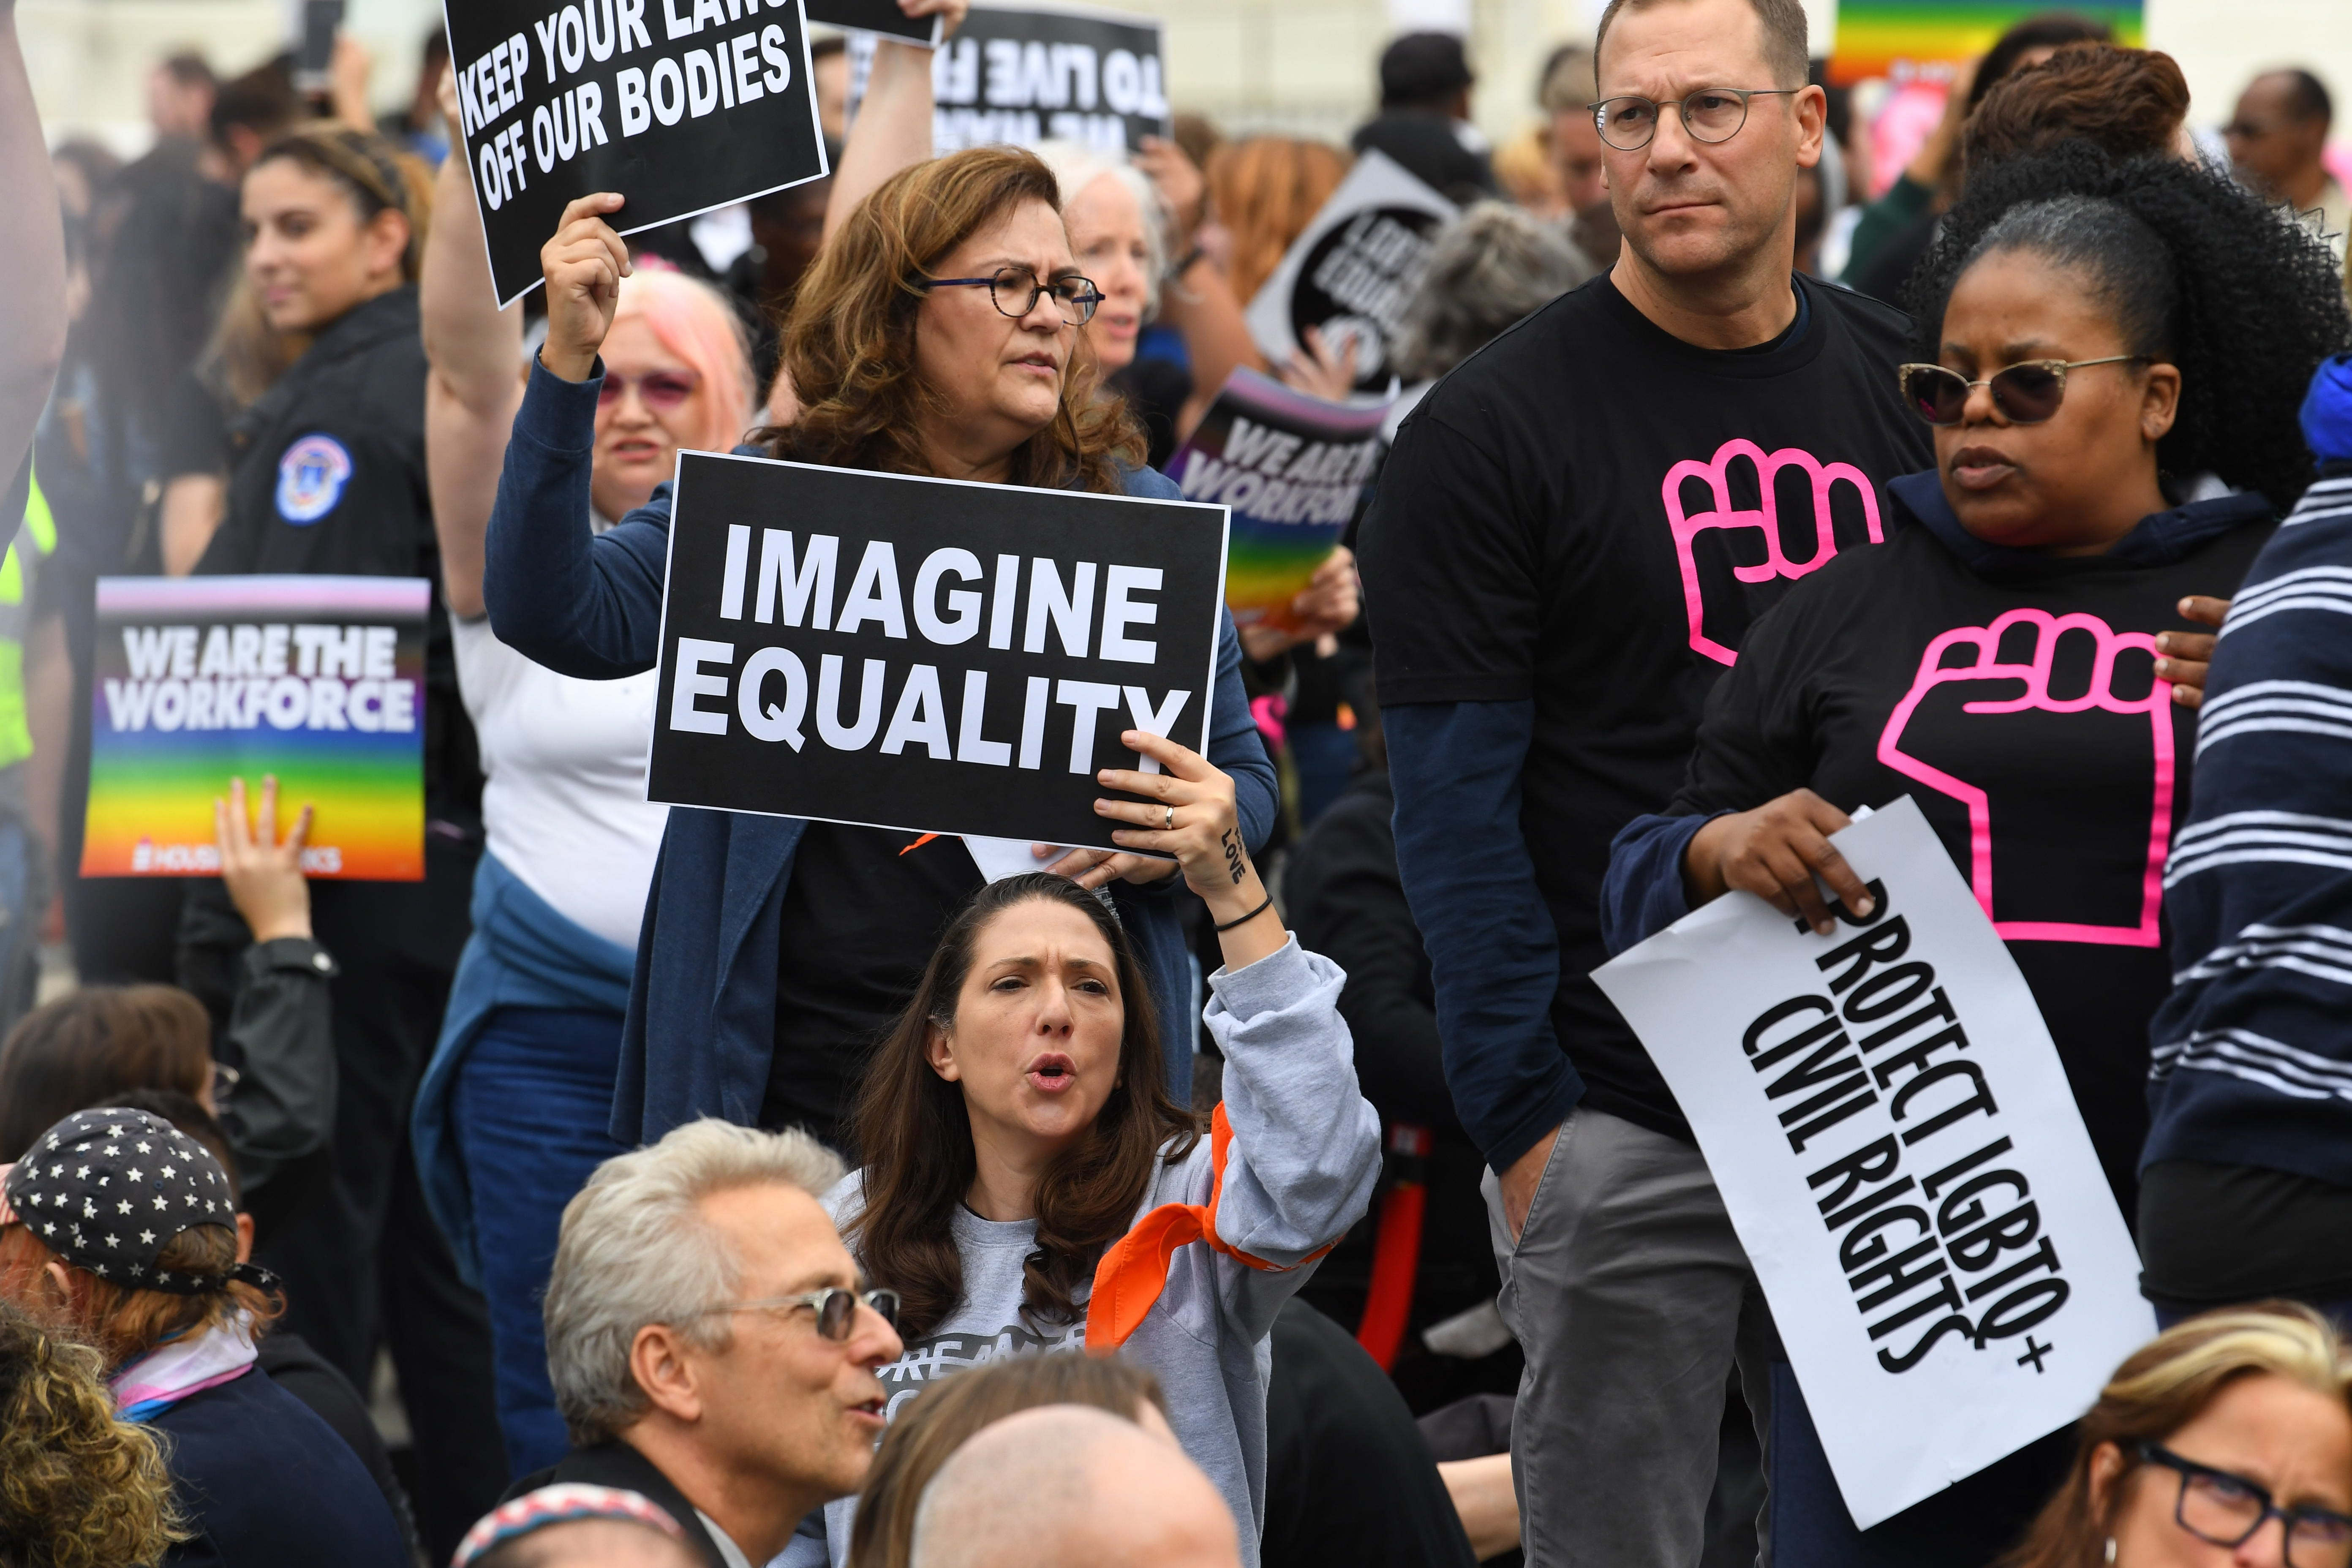 A decade of change 2010-2020: LGBTQ equality report shows leaps forward amid a backlash